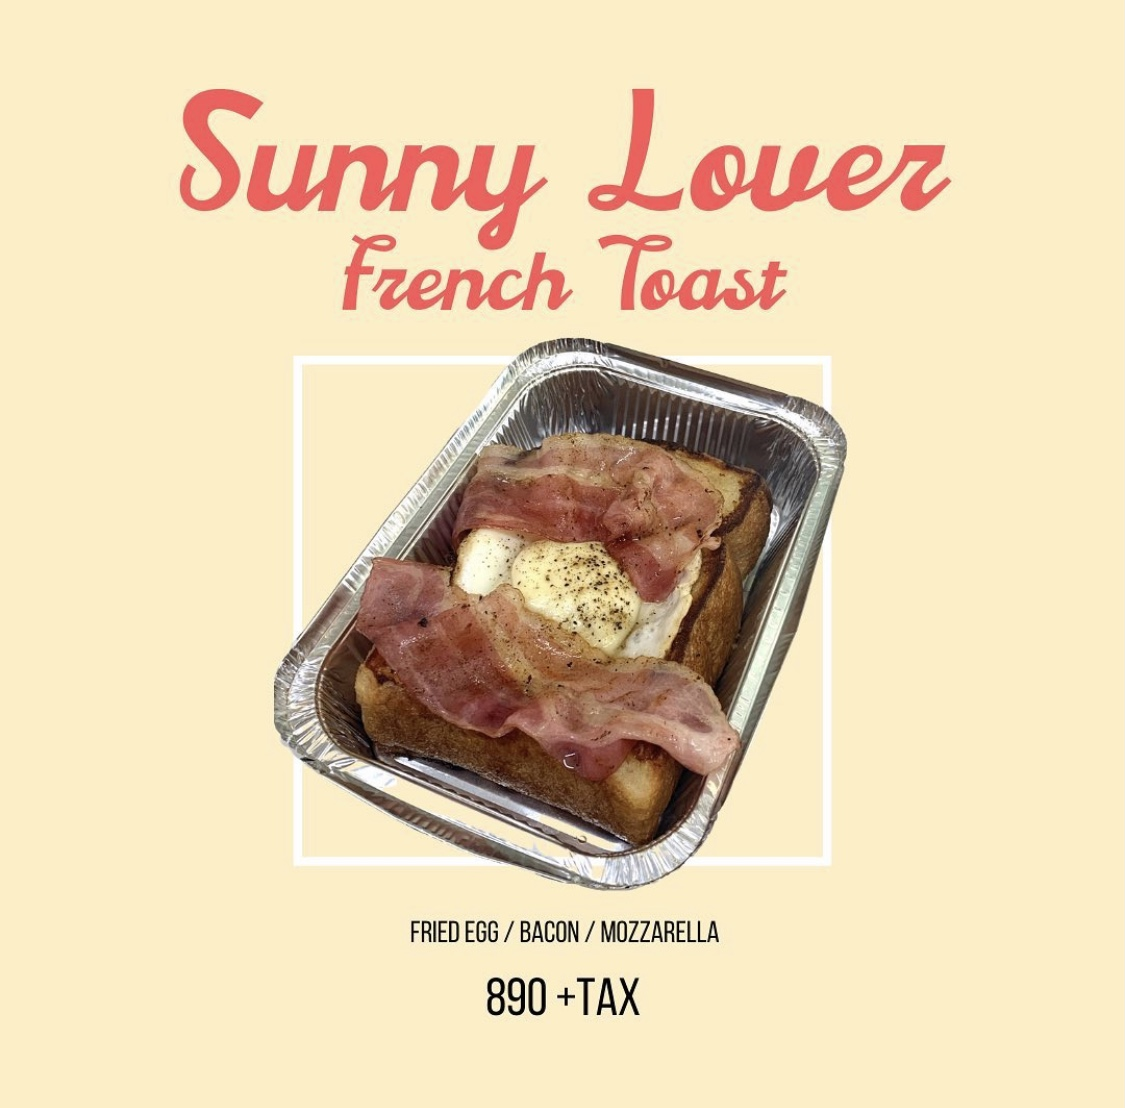 Sunny Lover french toast